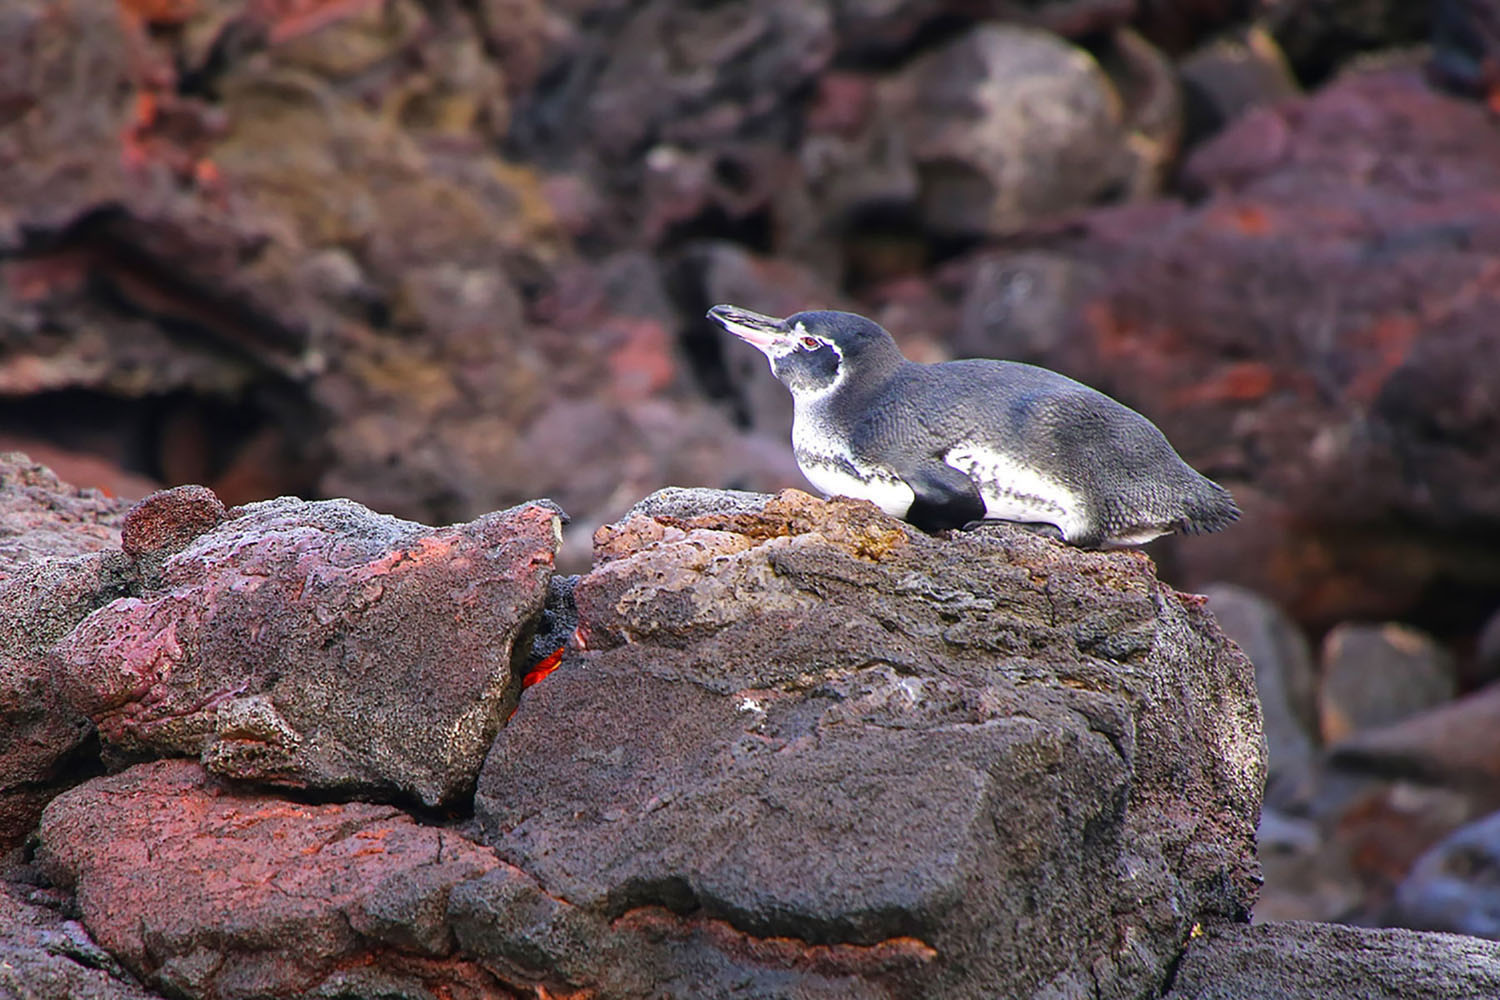 Penguins in the Galapagos Islands.